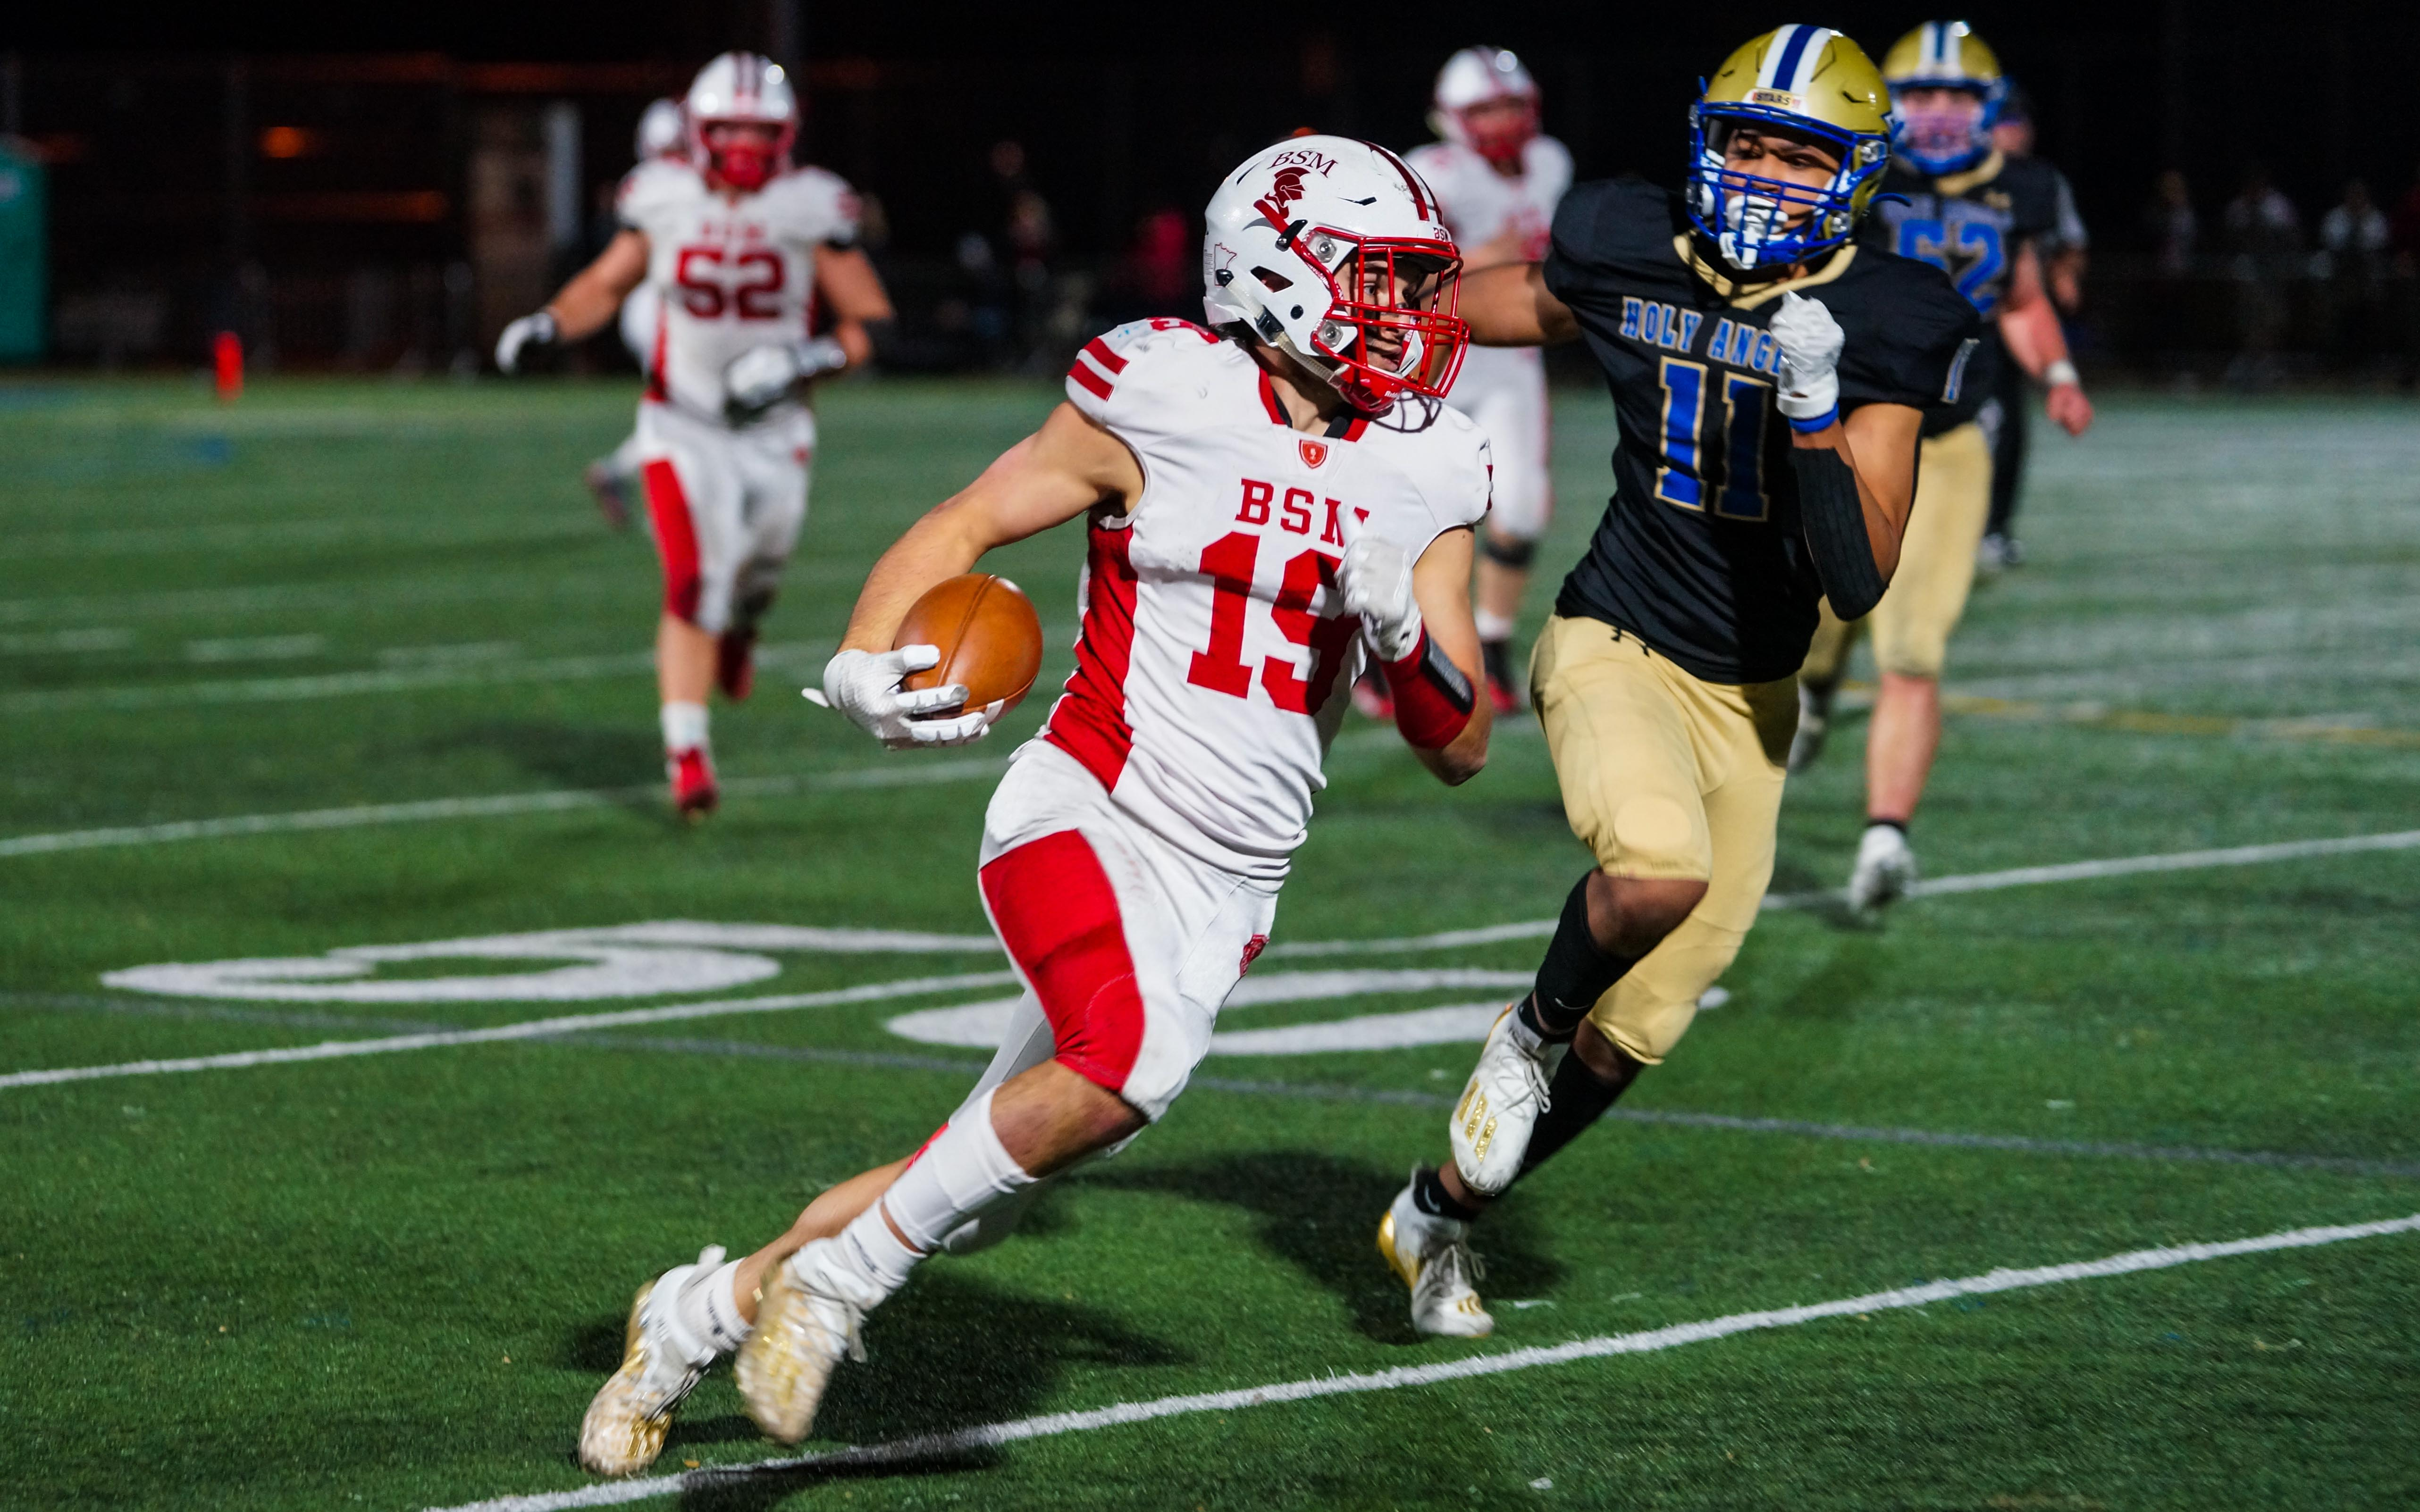 Benilde-St. Margaret's senior Johnny Woodford's two touchdowns were not enough push the Red Knights past Holy Angels on Nov 6. Photo by Korey McDermott, SportsEngine